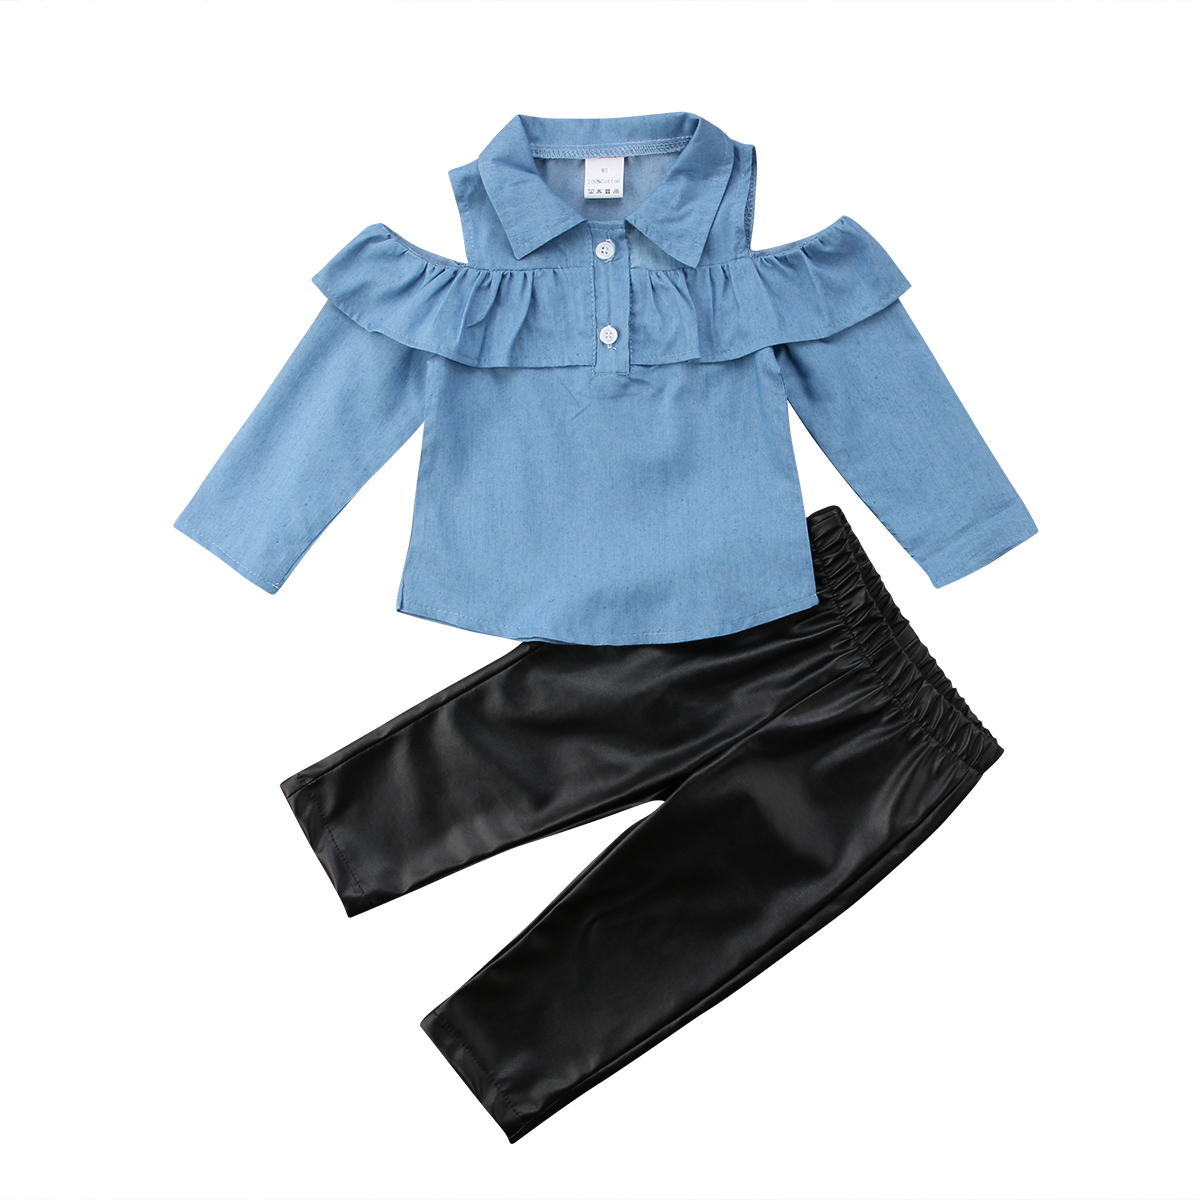 >2PCS Toddler Kids Girls Off shoulder Long Sleeve Tops Shirt Skinny <font><b>Leather</b></font> <font><b>Pants</b></font> <font><b>Outfits</b></font> Set Clothes Size 1-6T